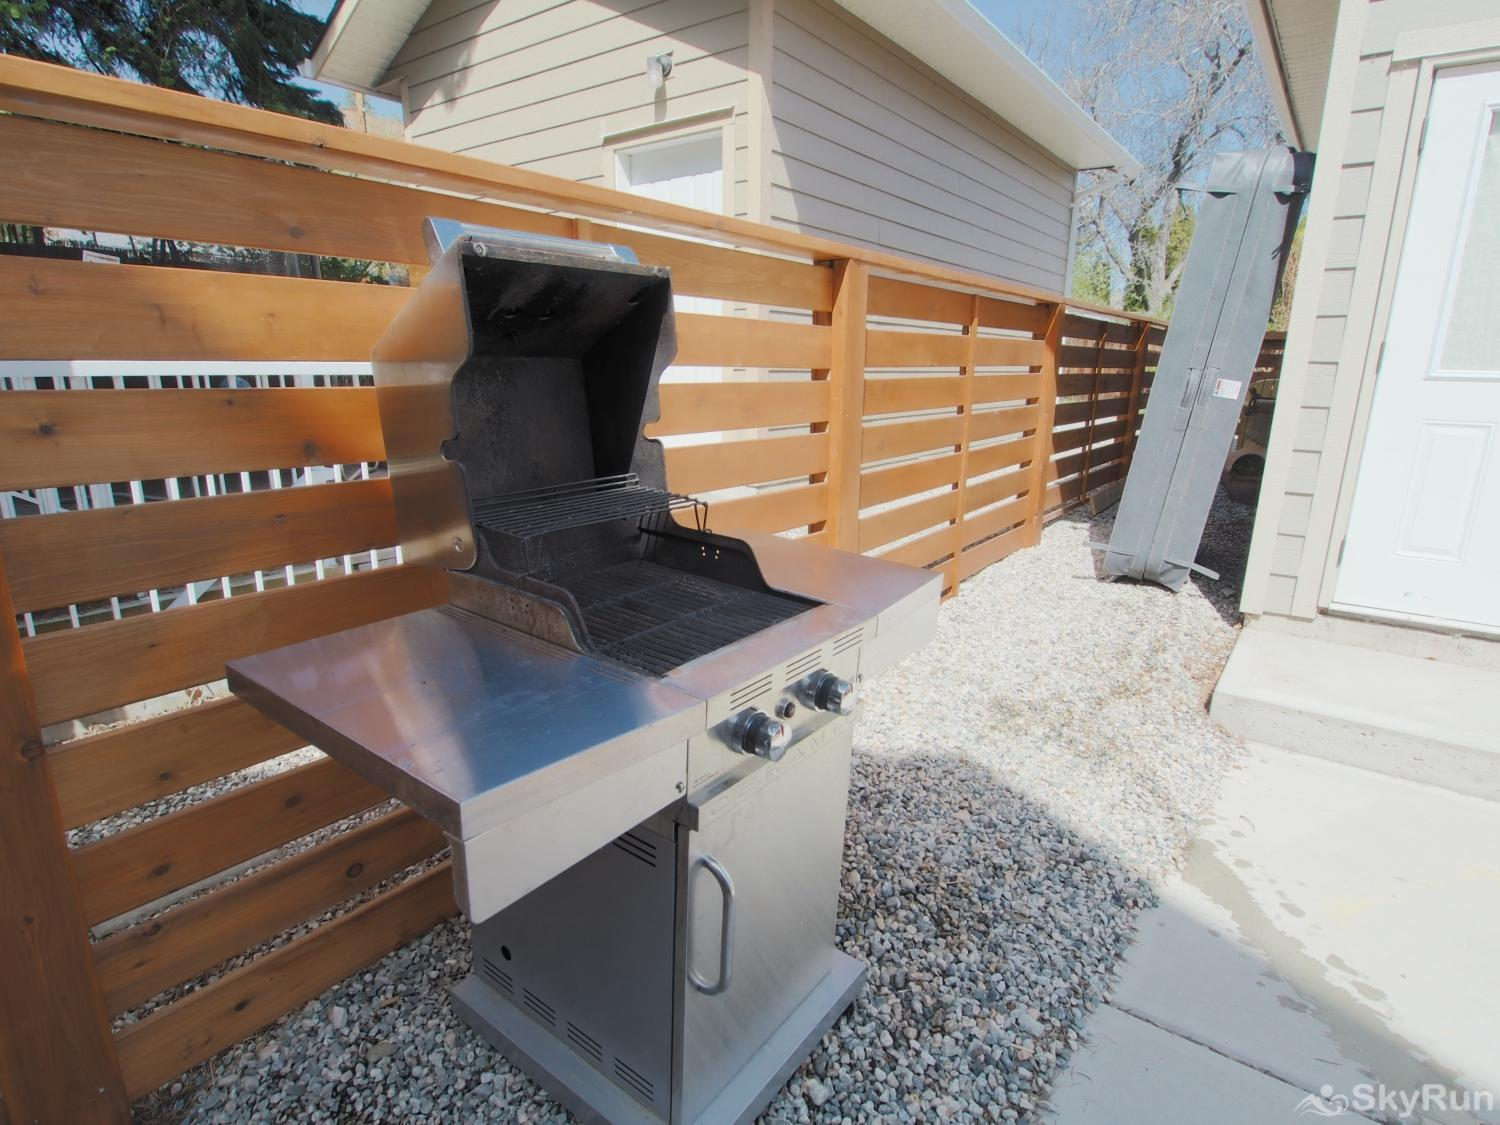 Old Summerland 1 bedroom suite enjoy BBQing...the propane BBQ fills the bill